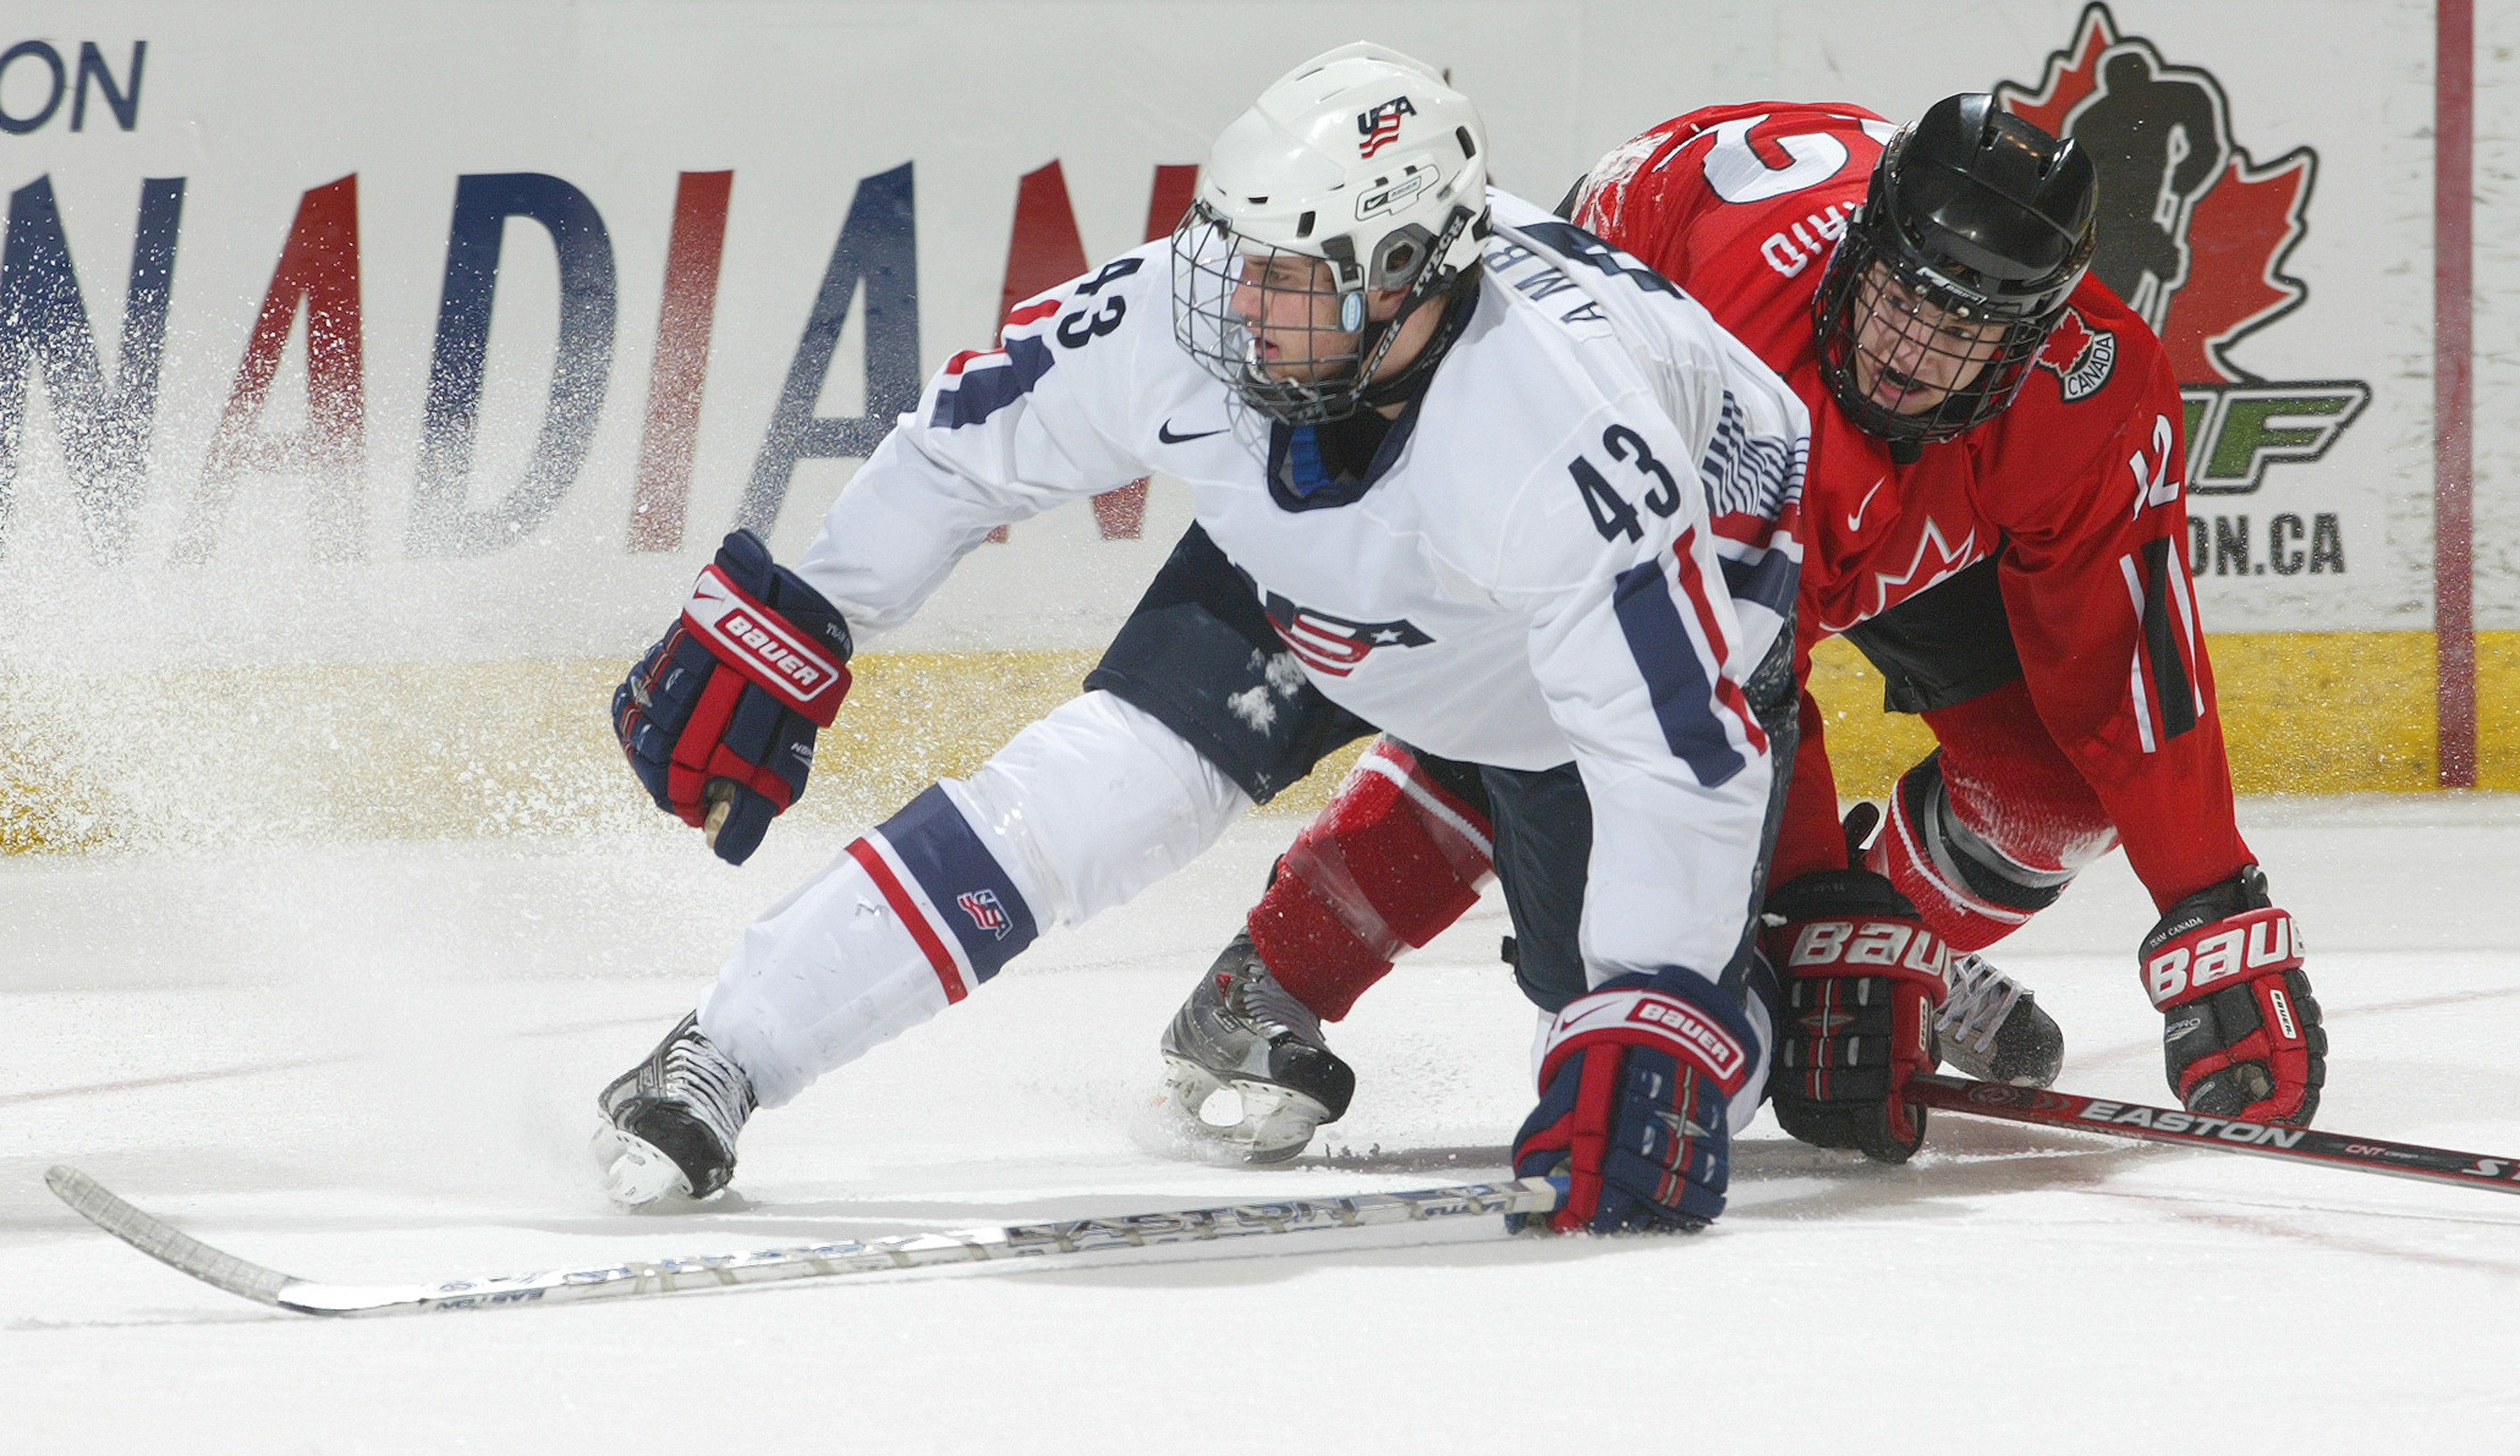 Tyler Amburgey #43 of Team USA collides with Peter Holland #12 of Team Ontario in a game at the John Labatt Centre on January 4, 2008, in London, Ontario | Photo: Claus Andersen/Getty Images